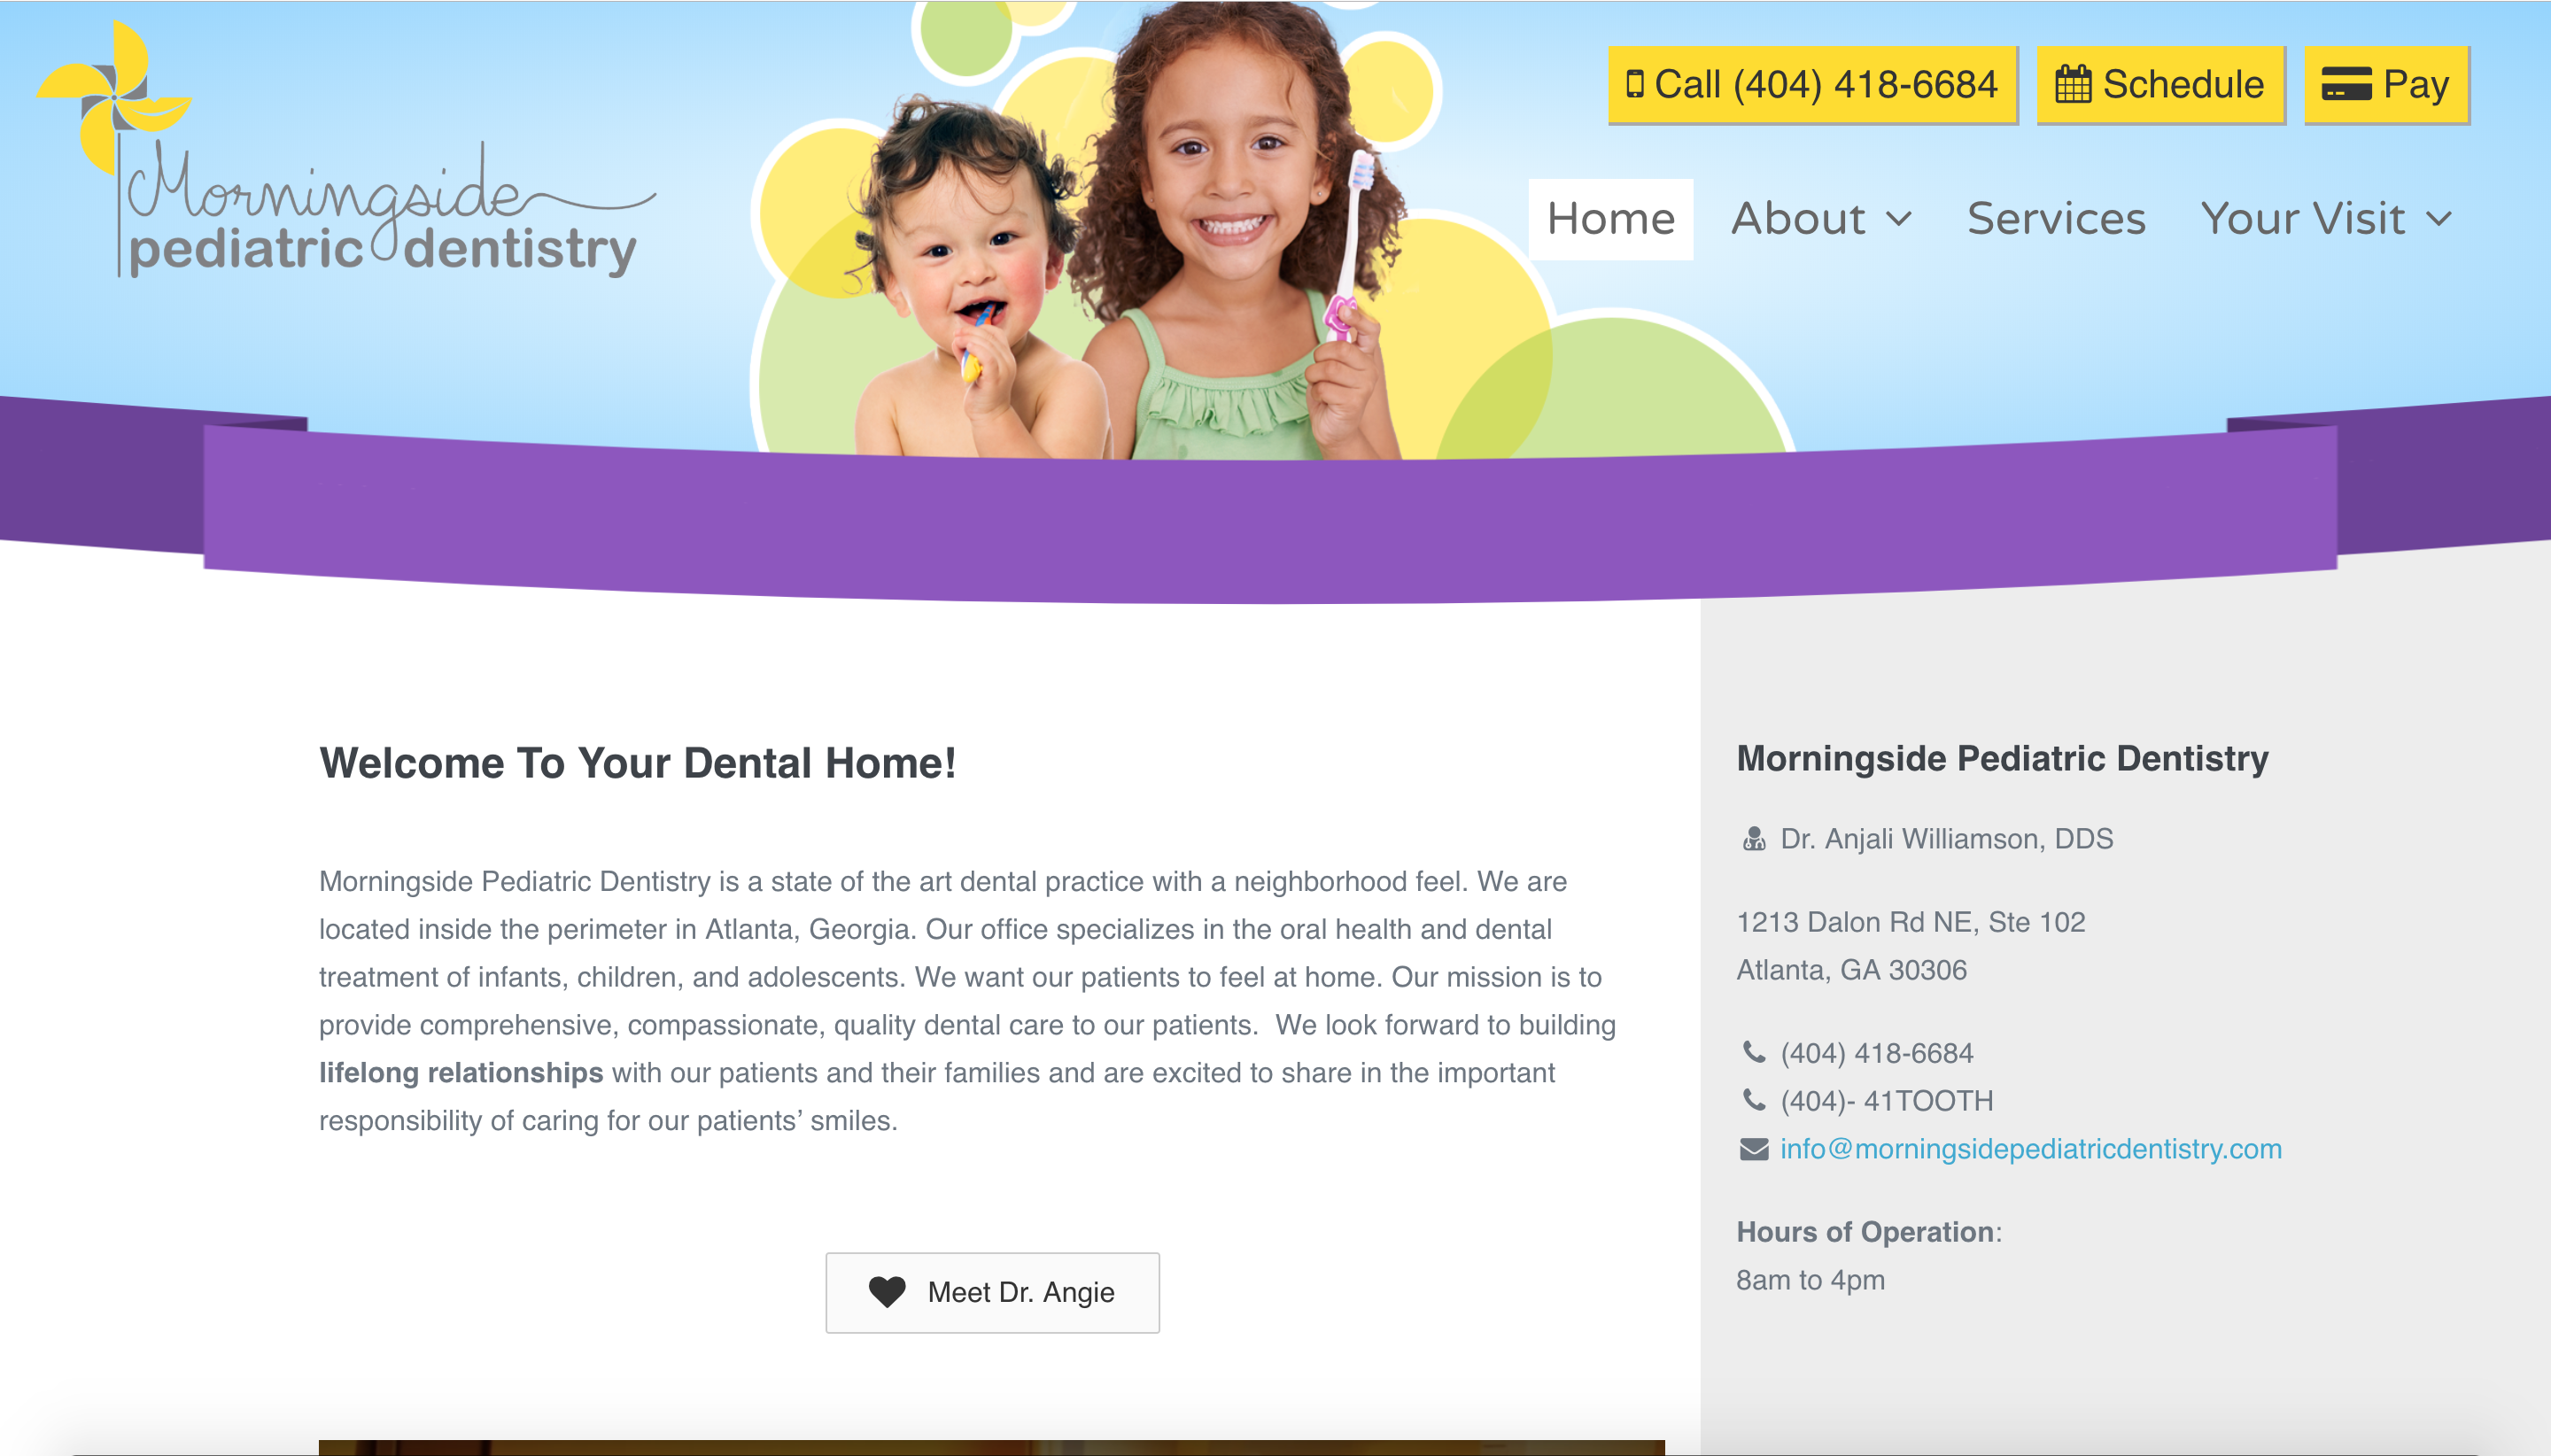 Web design for Morningside Pediatric Dentistry by Spokencode.